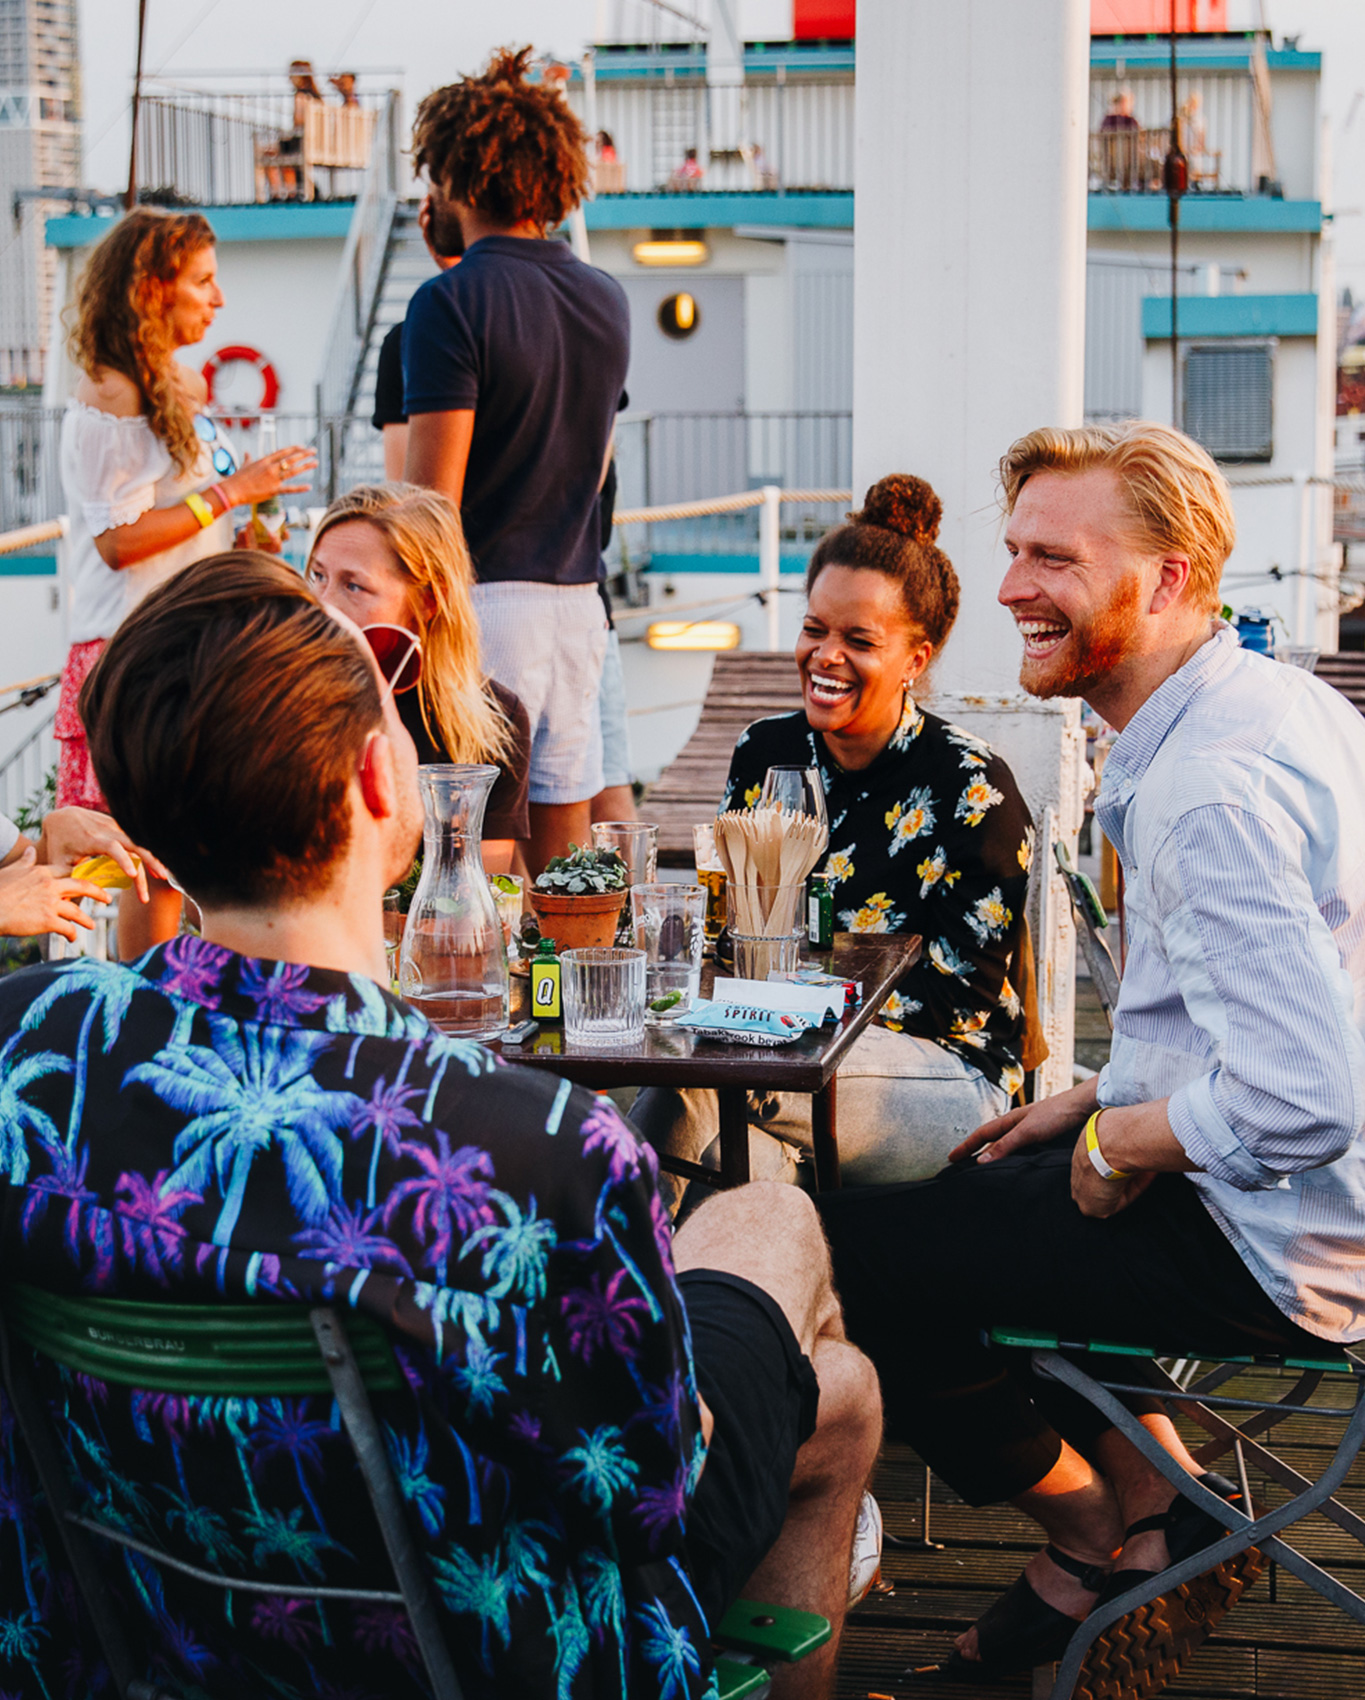 NIET-AWKWARD NETWERK EVENTS - Q1 - Freelance Date Night - 14 feb. 2019Q2 - Het Freelance Bedrijfsuitje - 6 jun. 2019Q3 - The Freelance Get Together - 29 sept. 2019Q4 - Coming up!